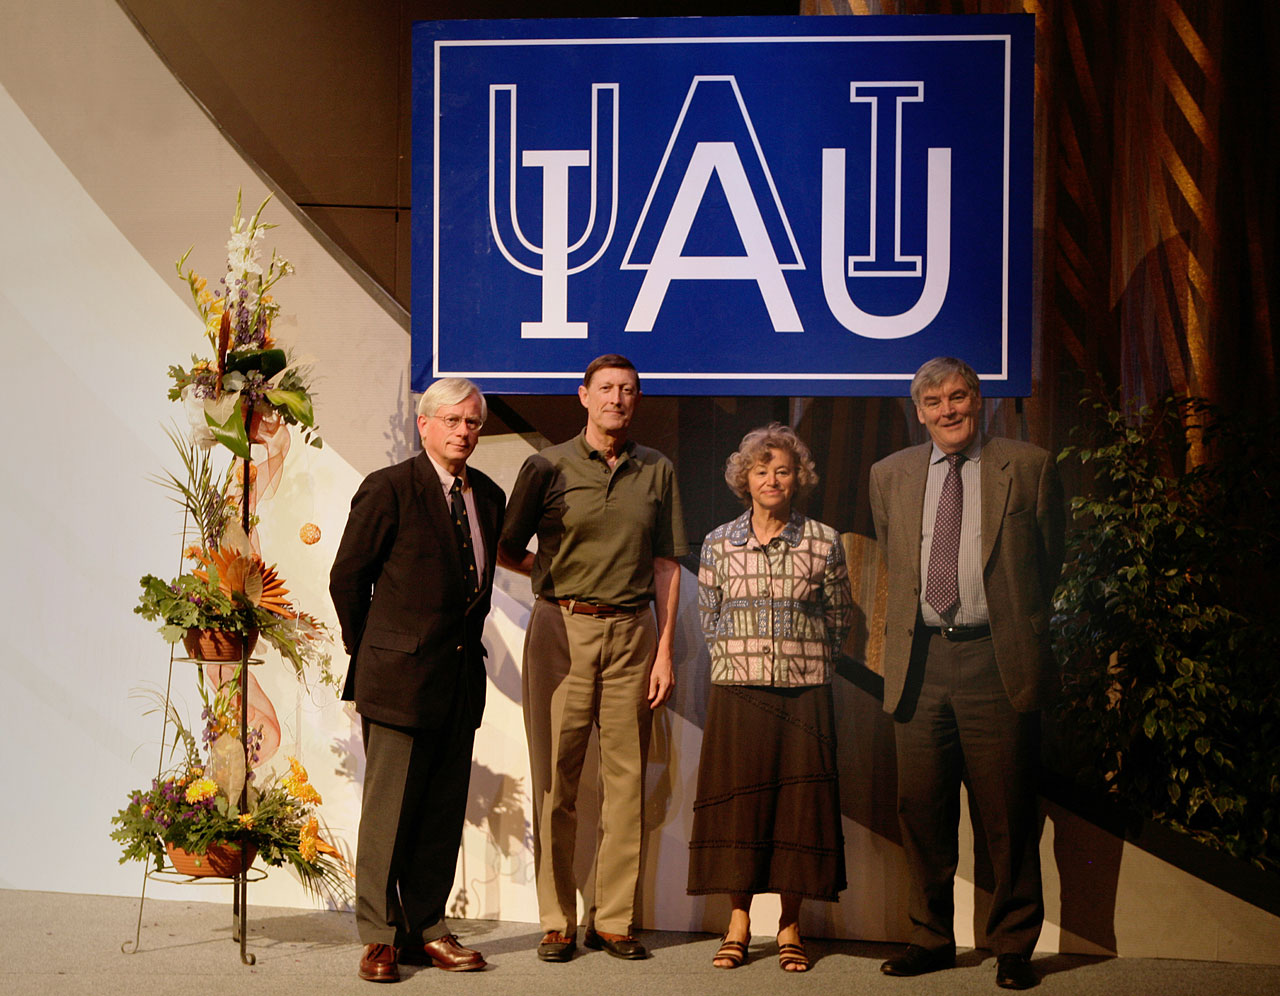 IAU Officers